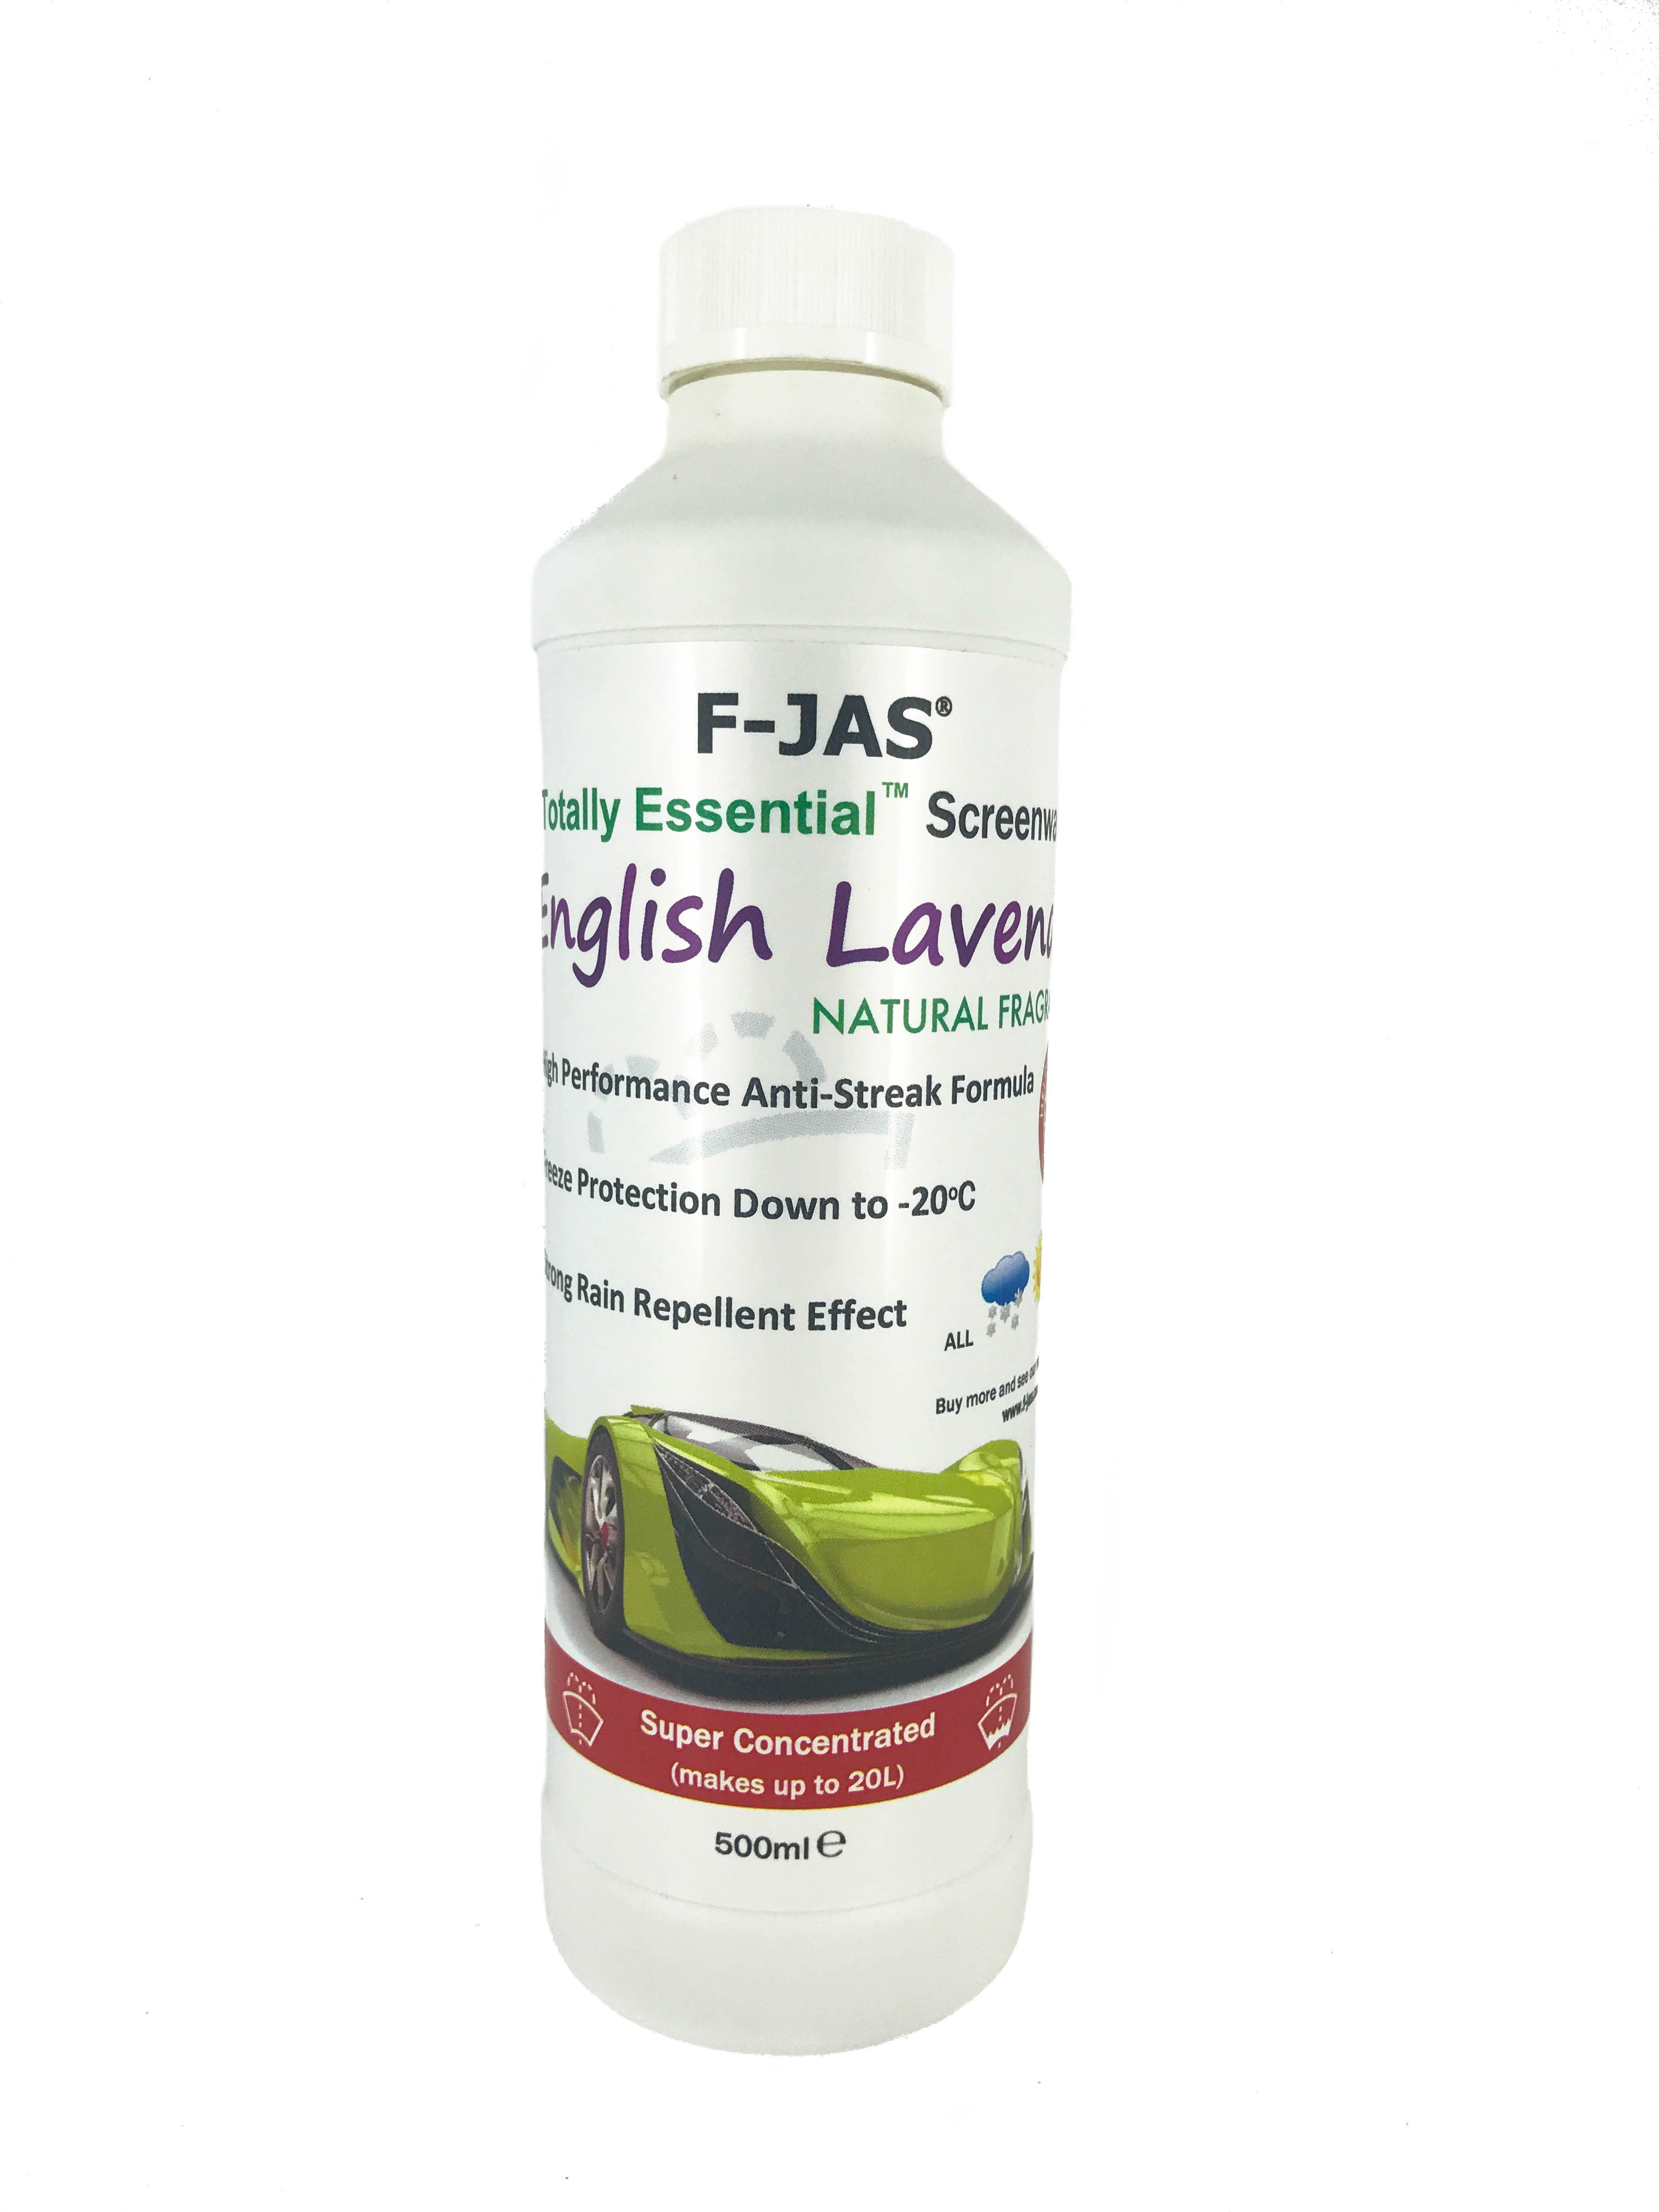 Naturally Scented Screenwash, 500ml Super Concentrated